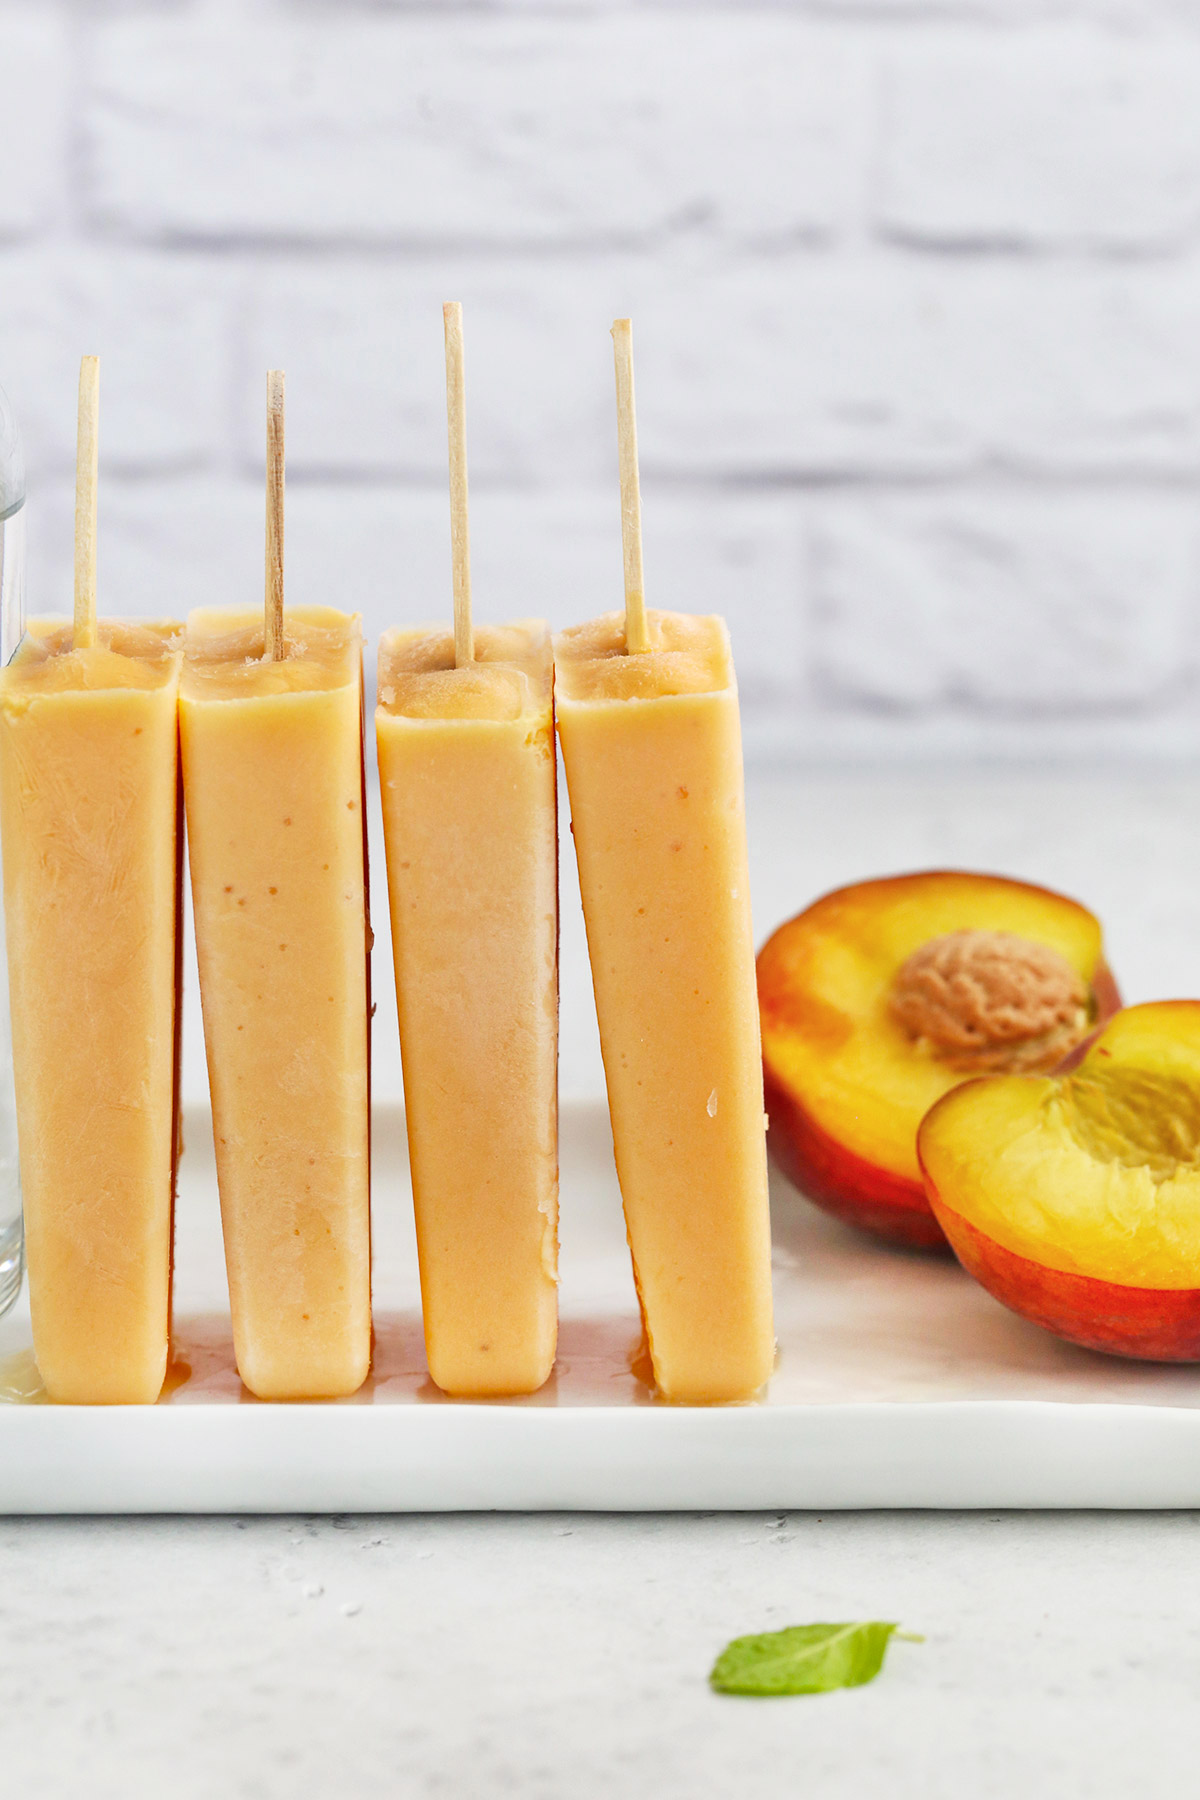 Peach Popsicles upright leaning on each other with a split peach in the background